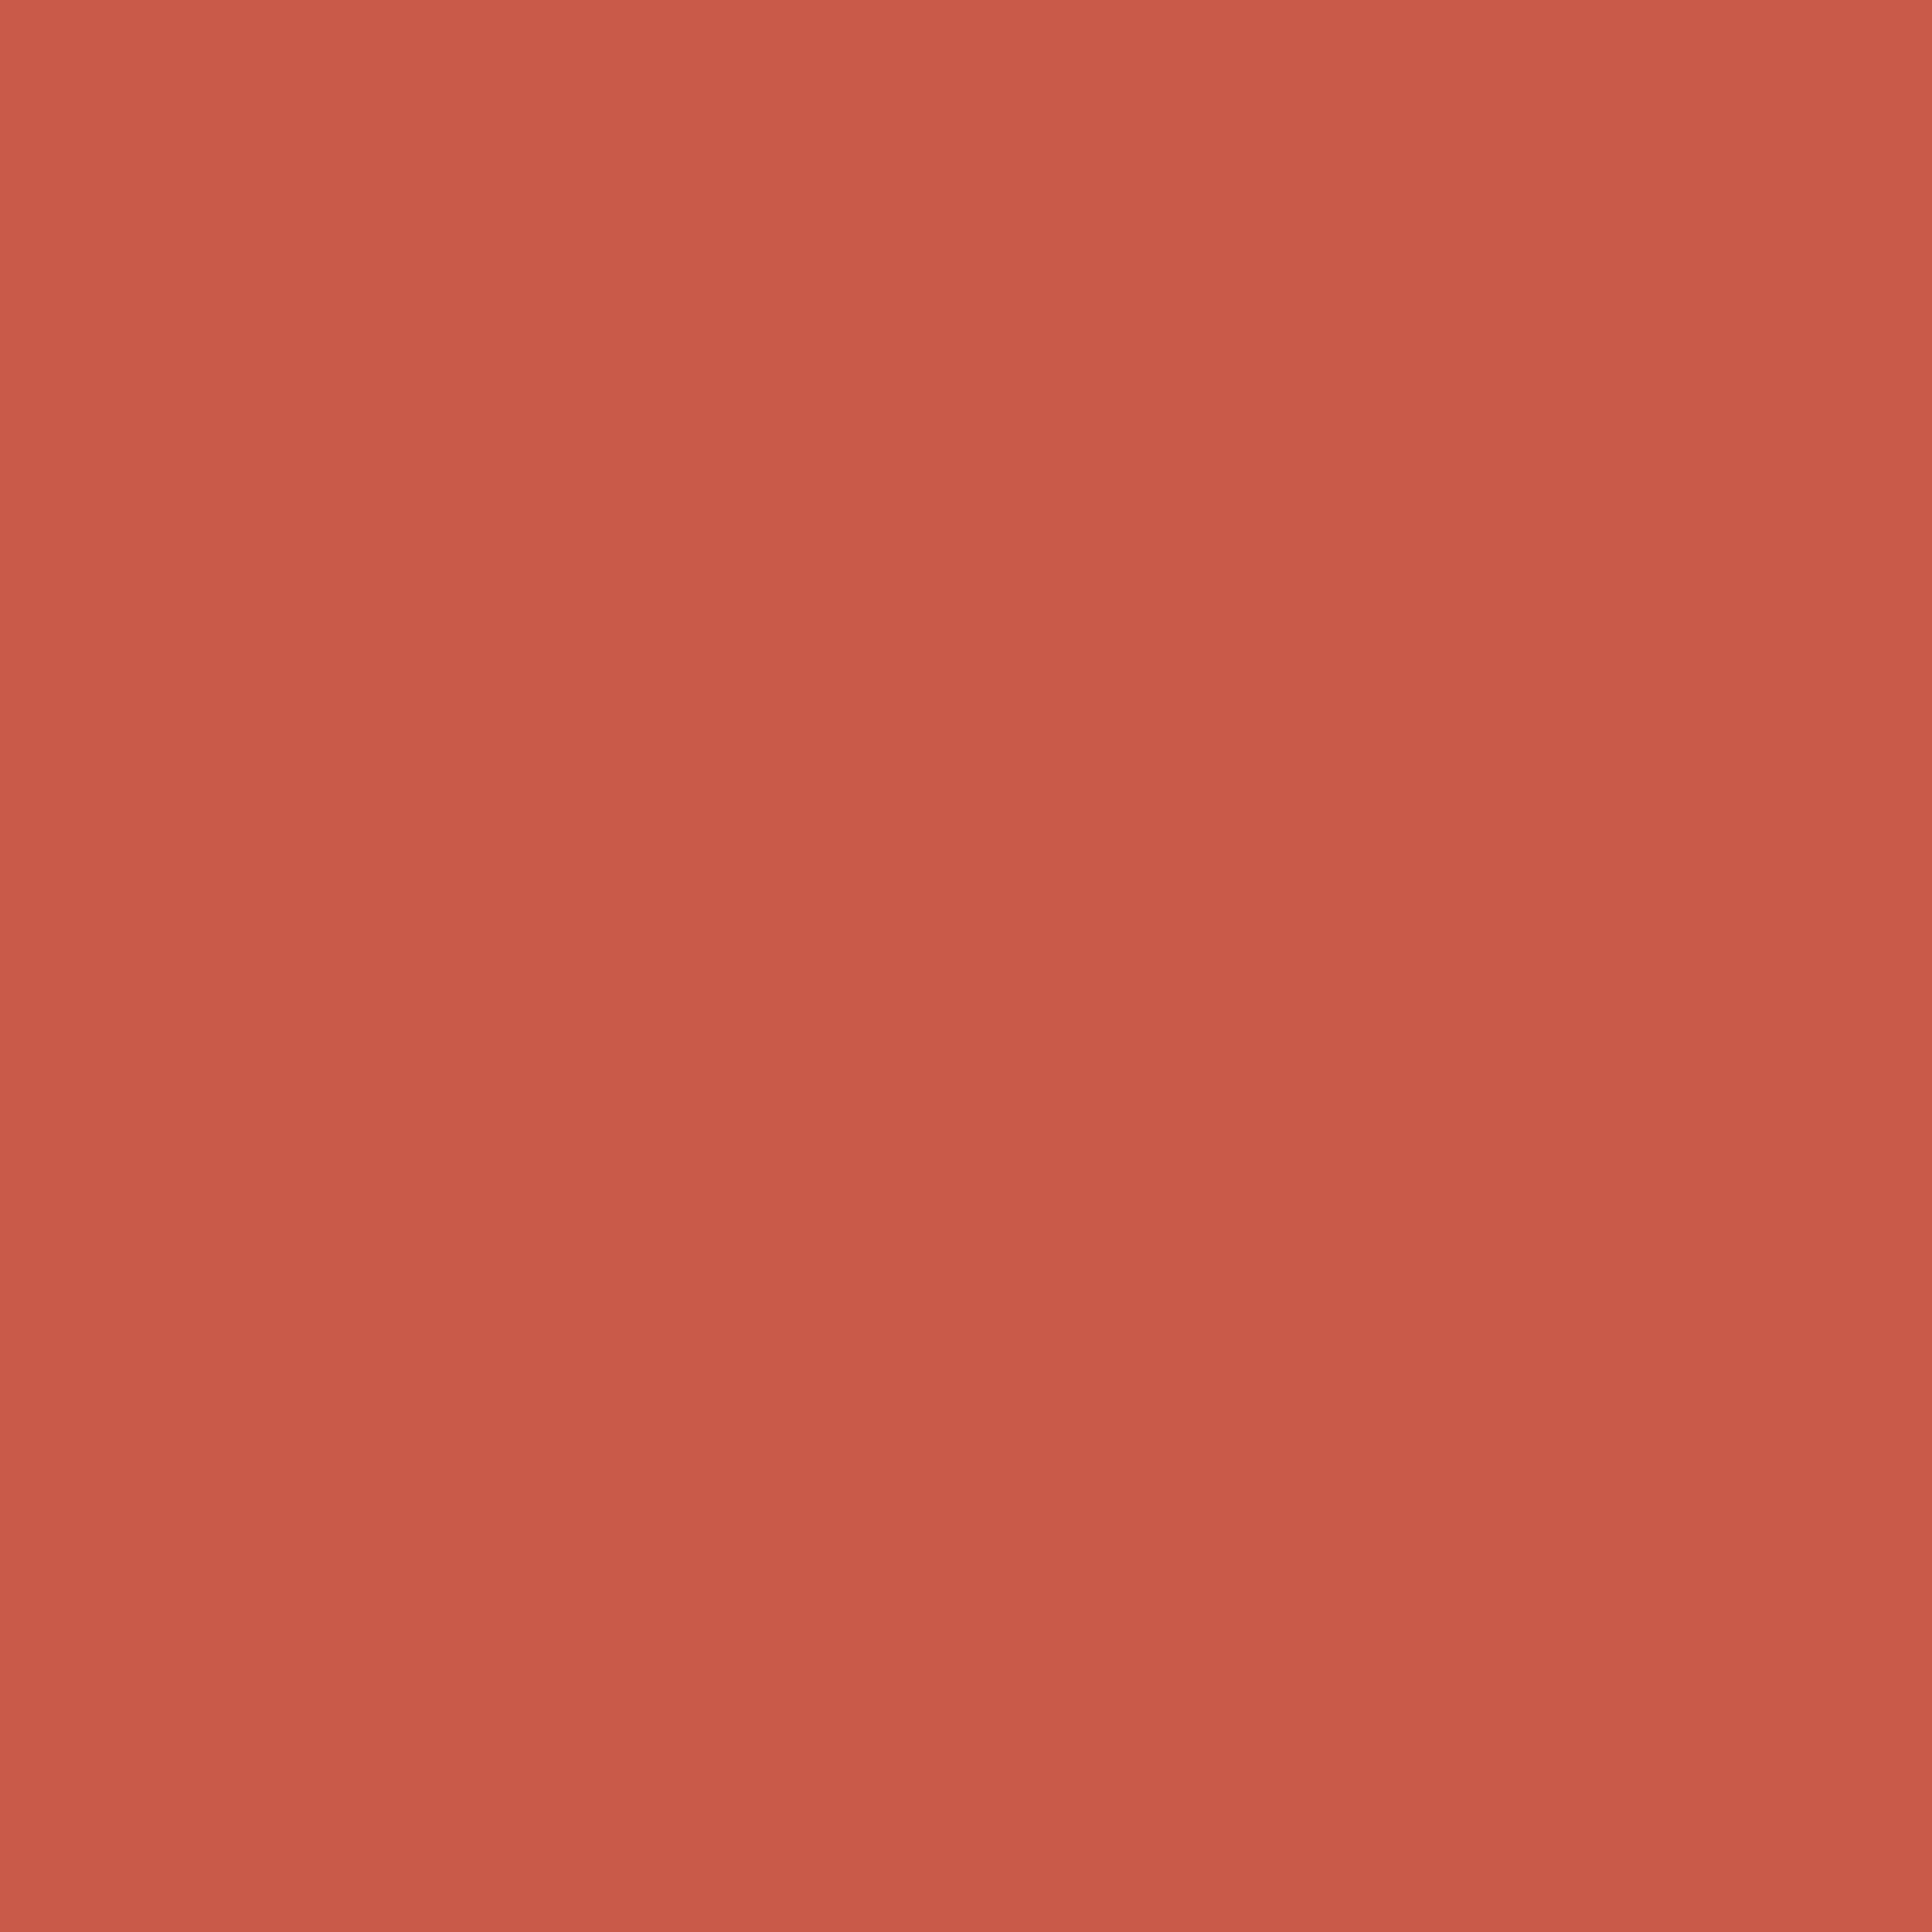 2732x2732 Cedar Chest Solid Color Background